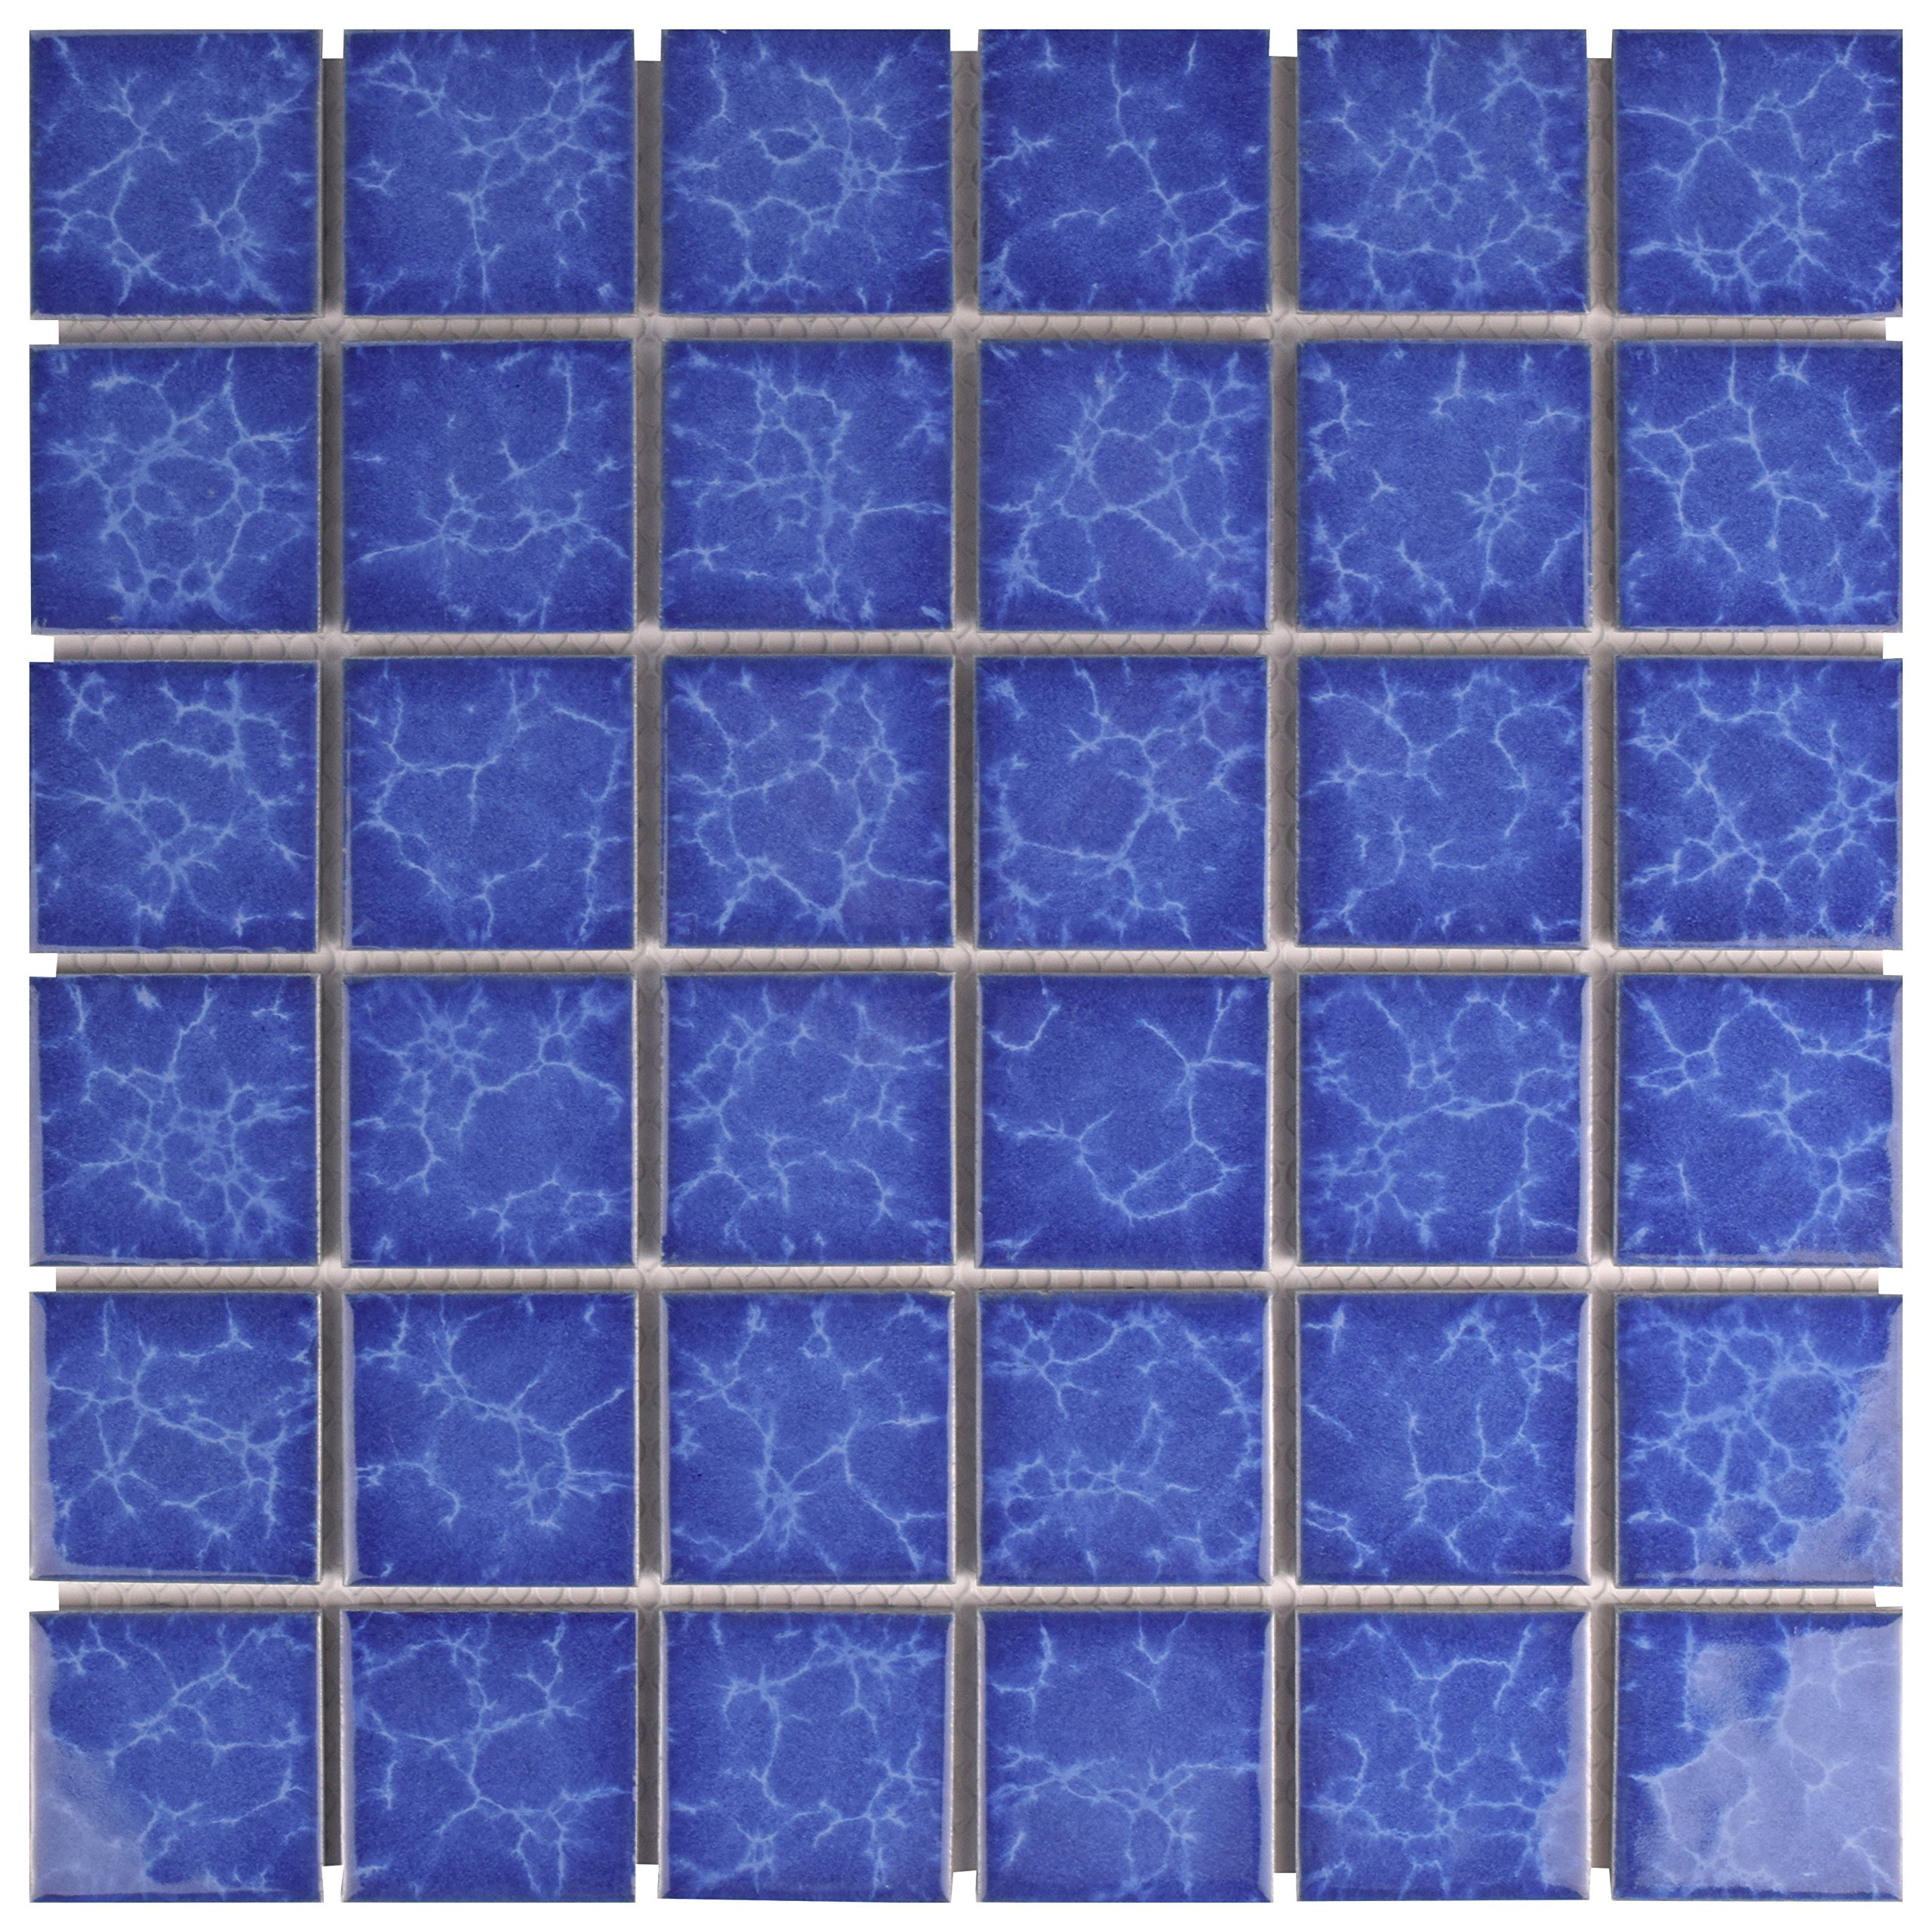 SomerTile FYFW2SCT Waterdesign Square Catalan Porcelain Floor and Wall Tile, 11.875'' x 11.875'', Blue